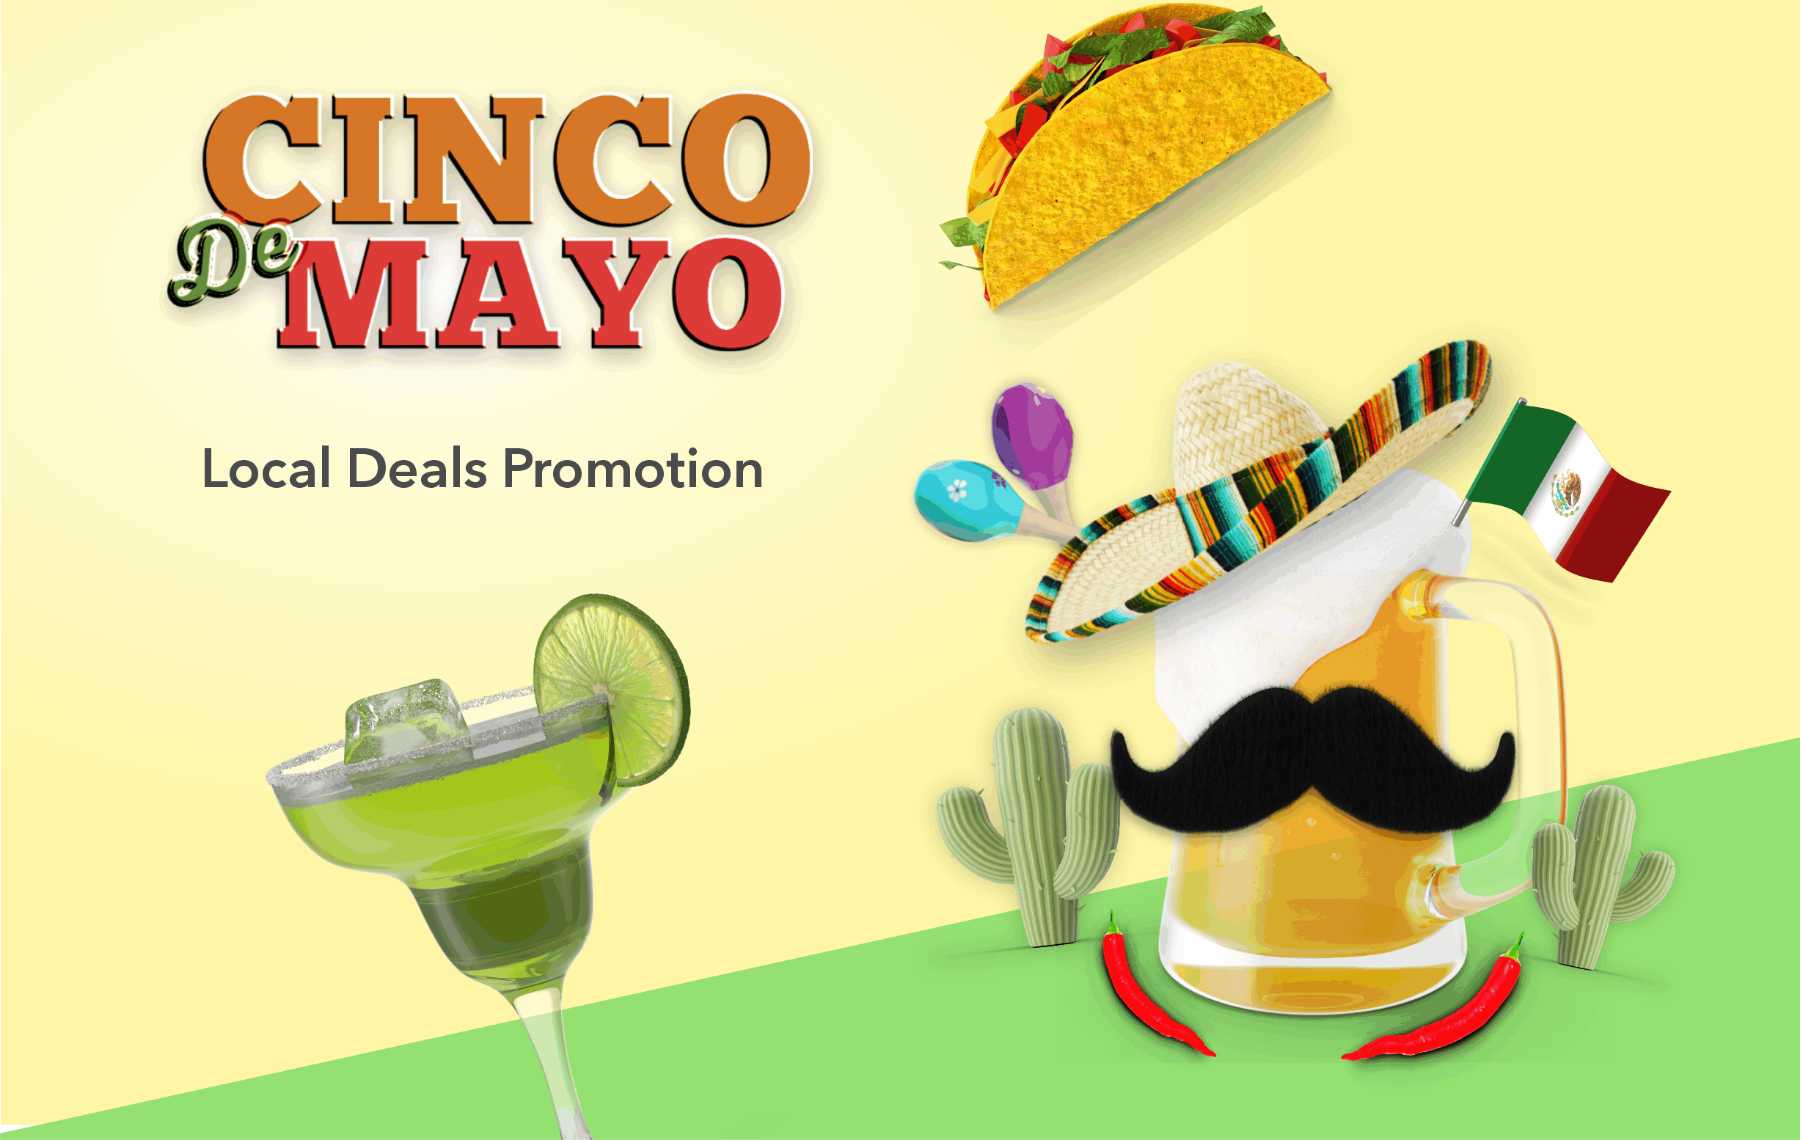 Cinco de Mayo Austin 2020 - Gifts & Ideas for Things to Do - Events in Austin Texas